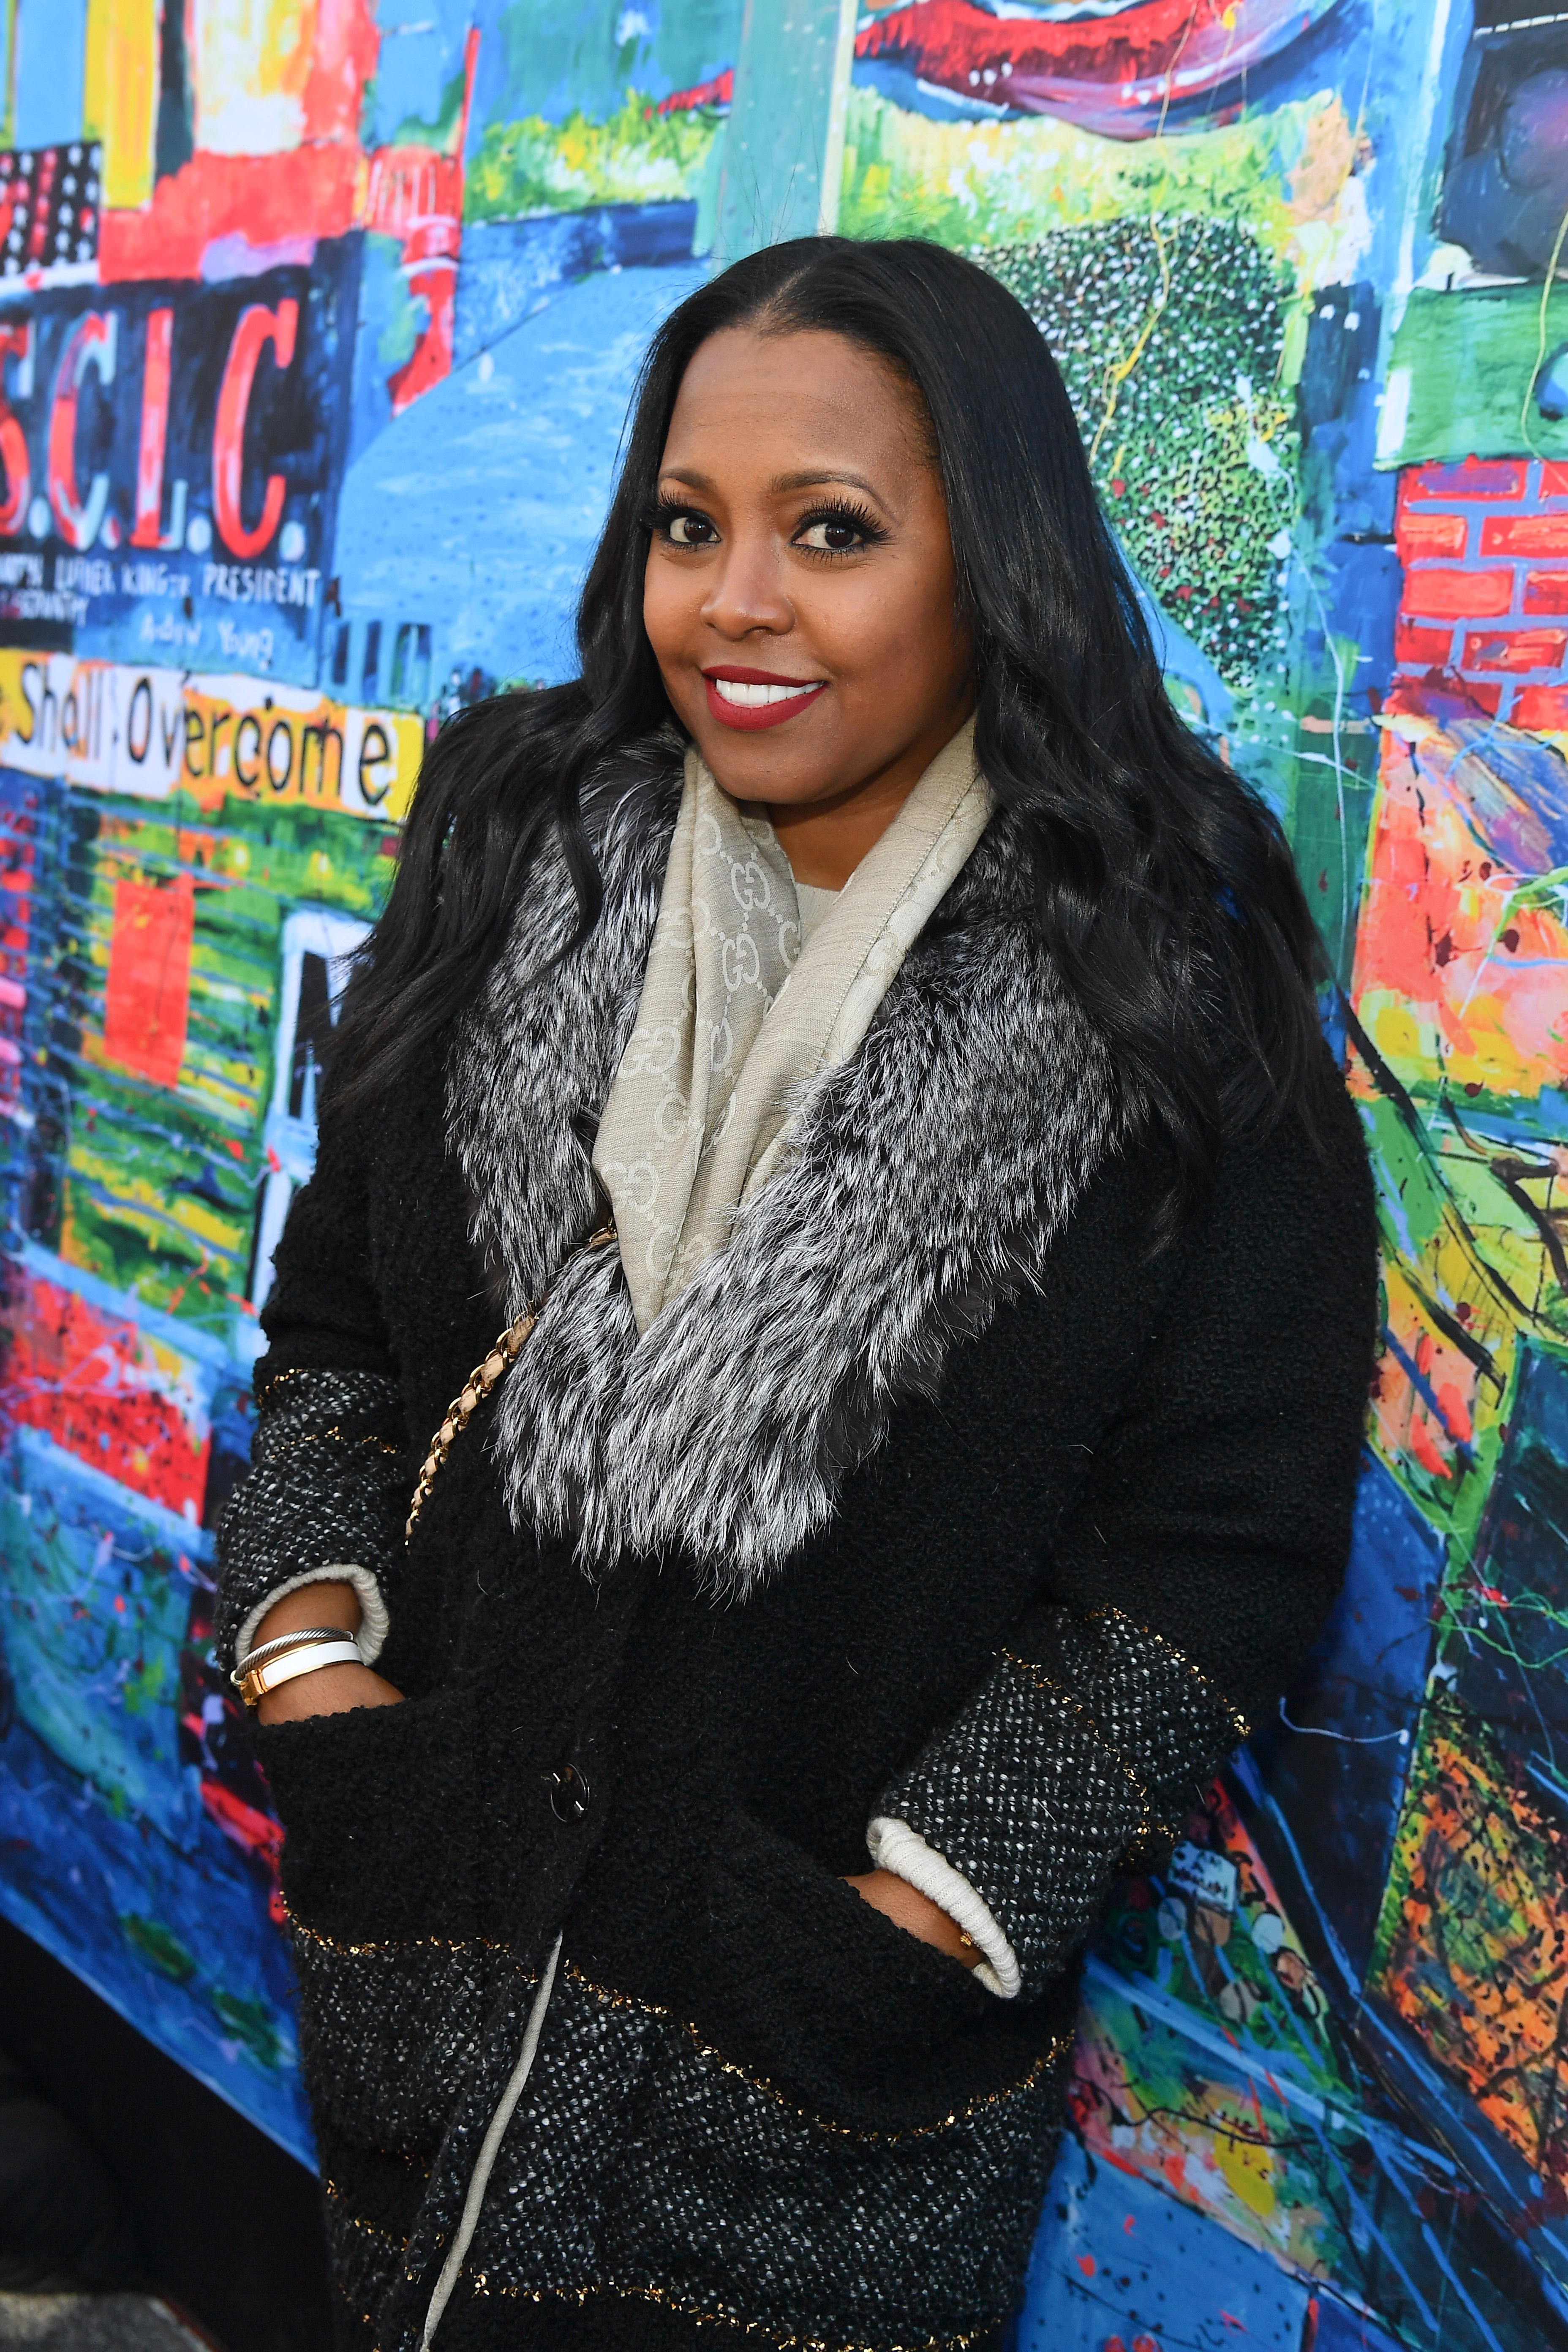 Keshia Knight Pulliam at Comcast NBCUniversal Exclusive Digital Mosaic at Ebenezer Baptist Church in Georgia on Jan. 21, 2019. | Photo: Getty Images